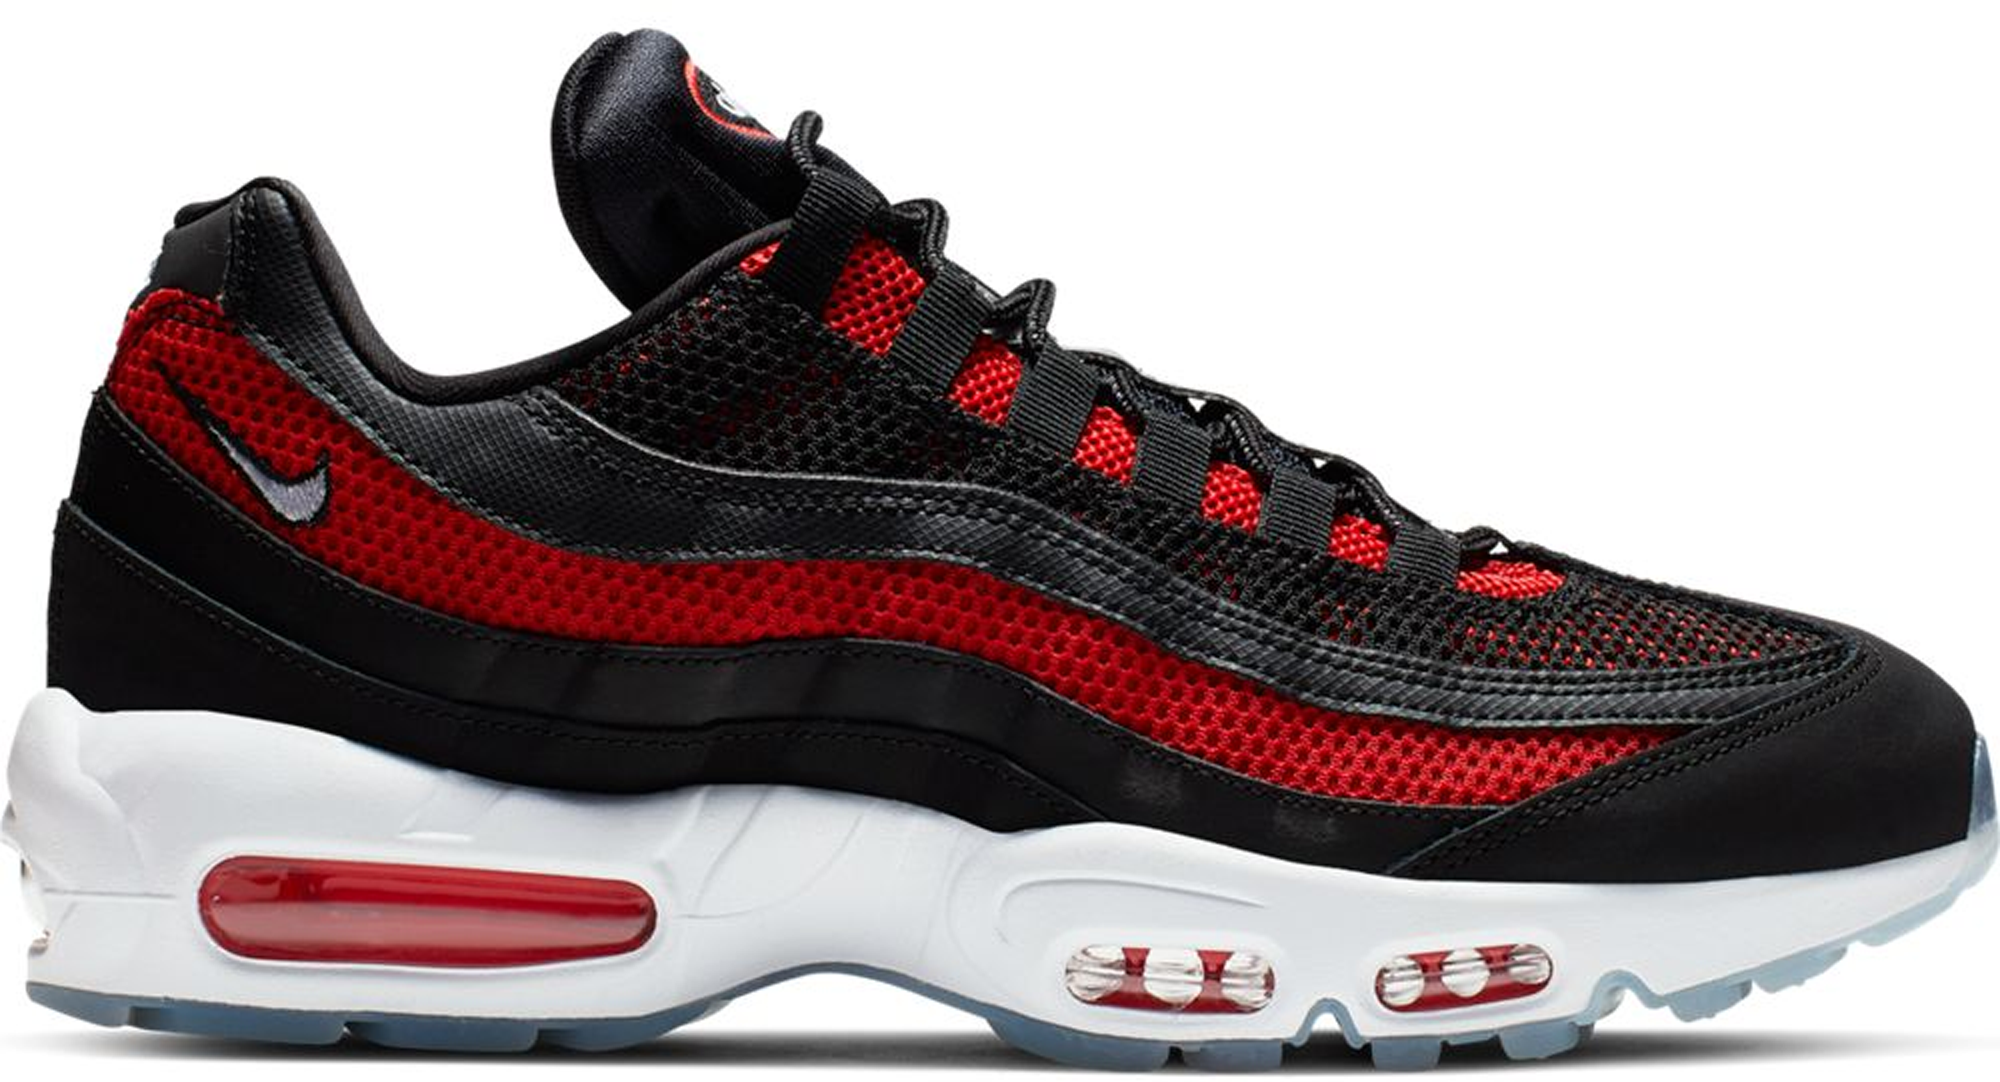 Air Max 95 Bred Ice